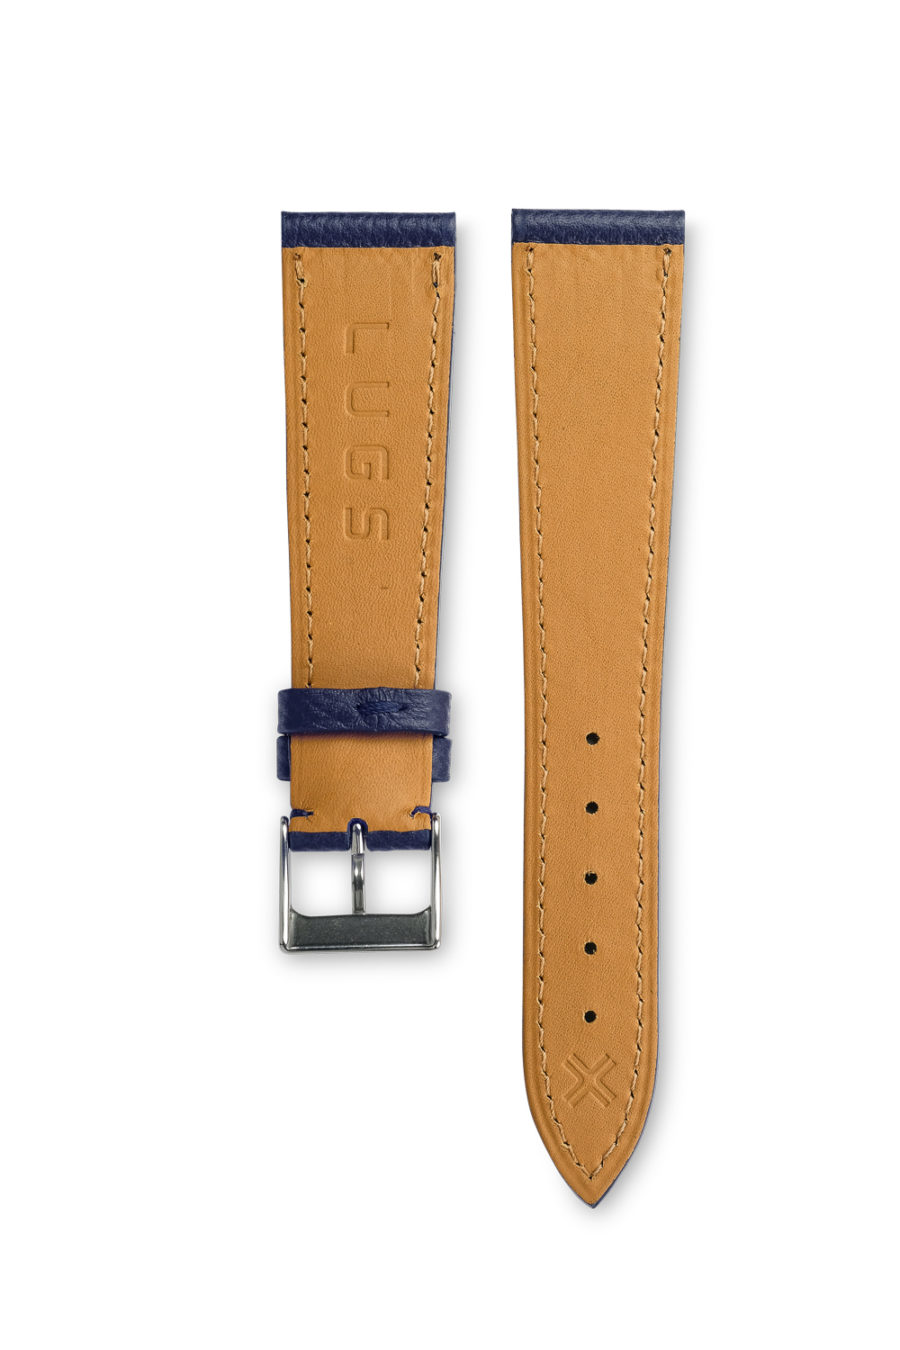 Grained Classic Navy Blue leather watch strap - tone on tone stitching - LUGS brand